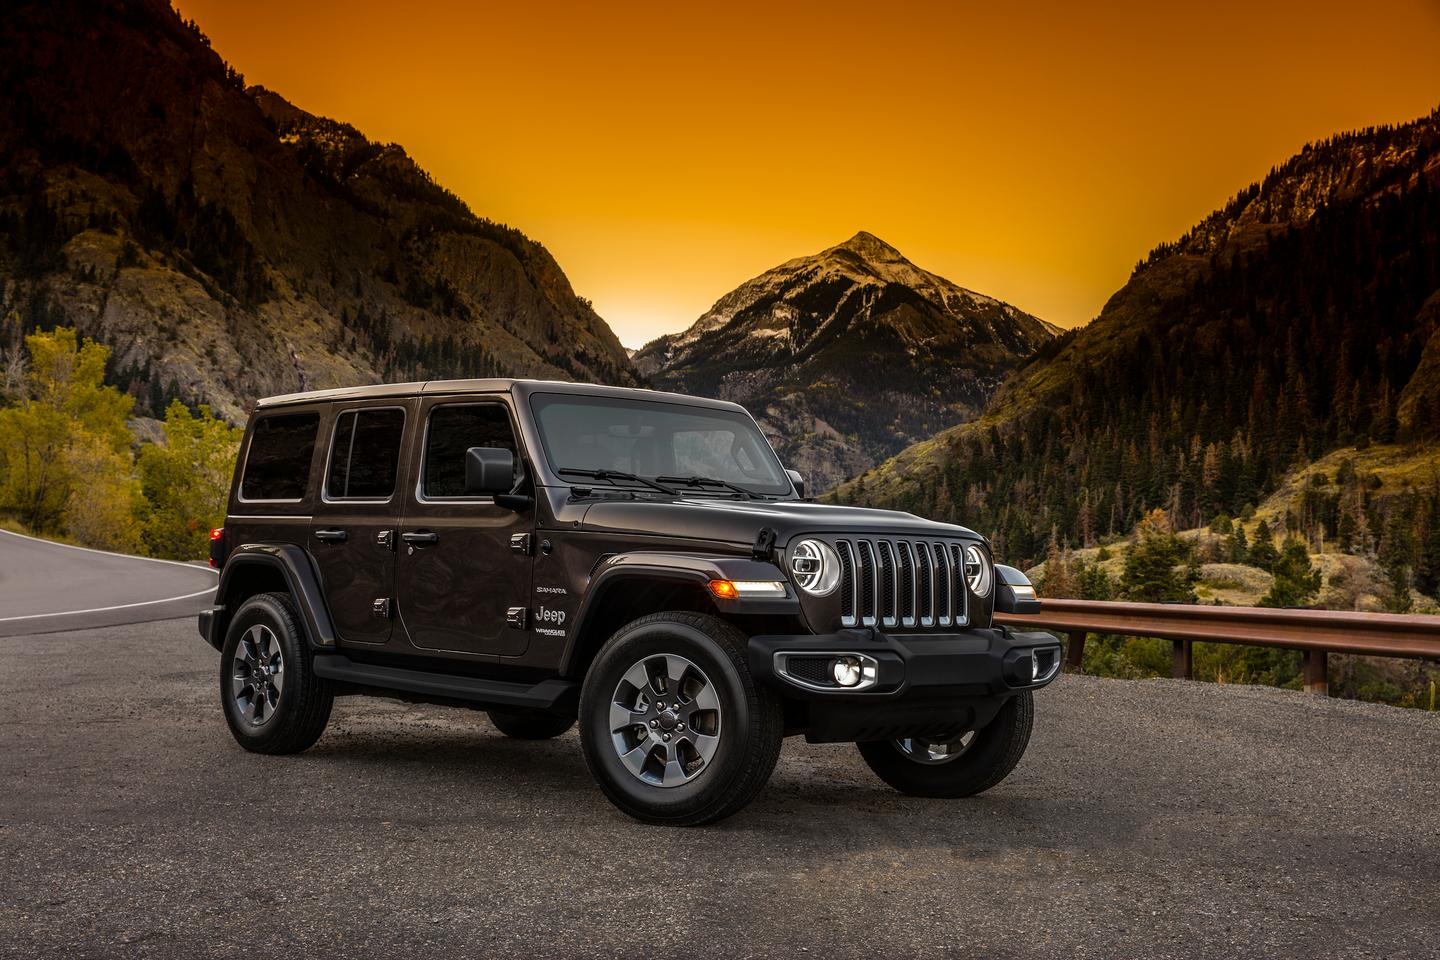 The new 2018 Jeep Wrangler Unlimited is teased with this photograph, showing the new body styling given to the next-generation of the iconic off-roader